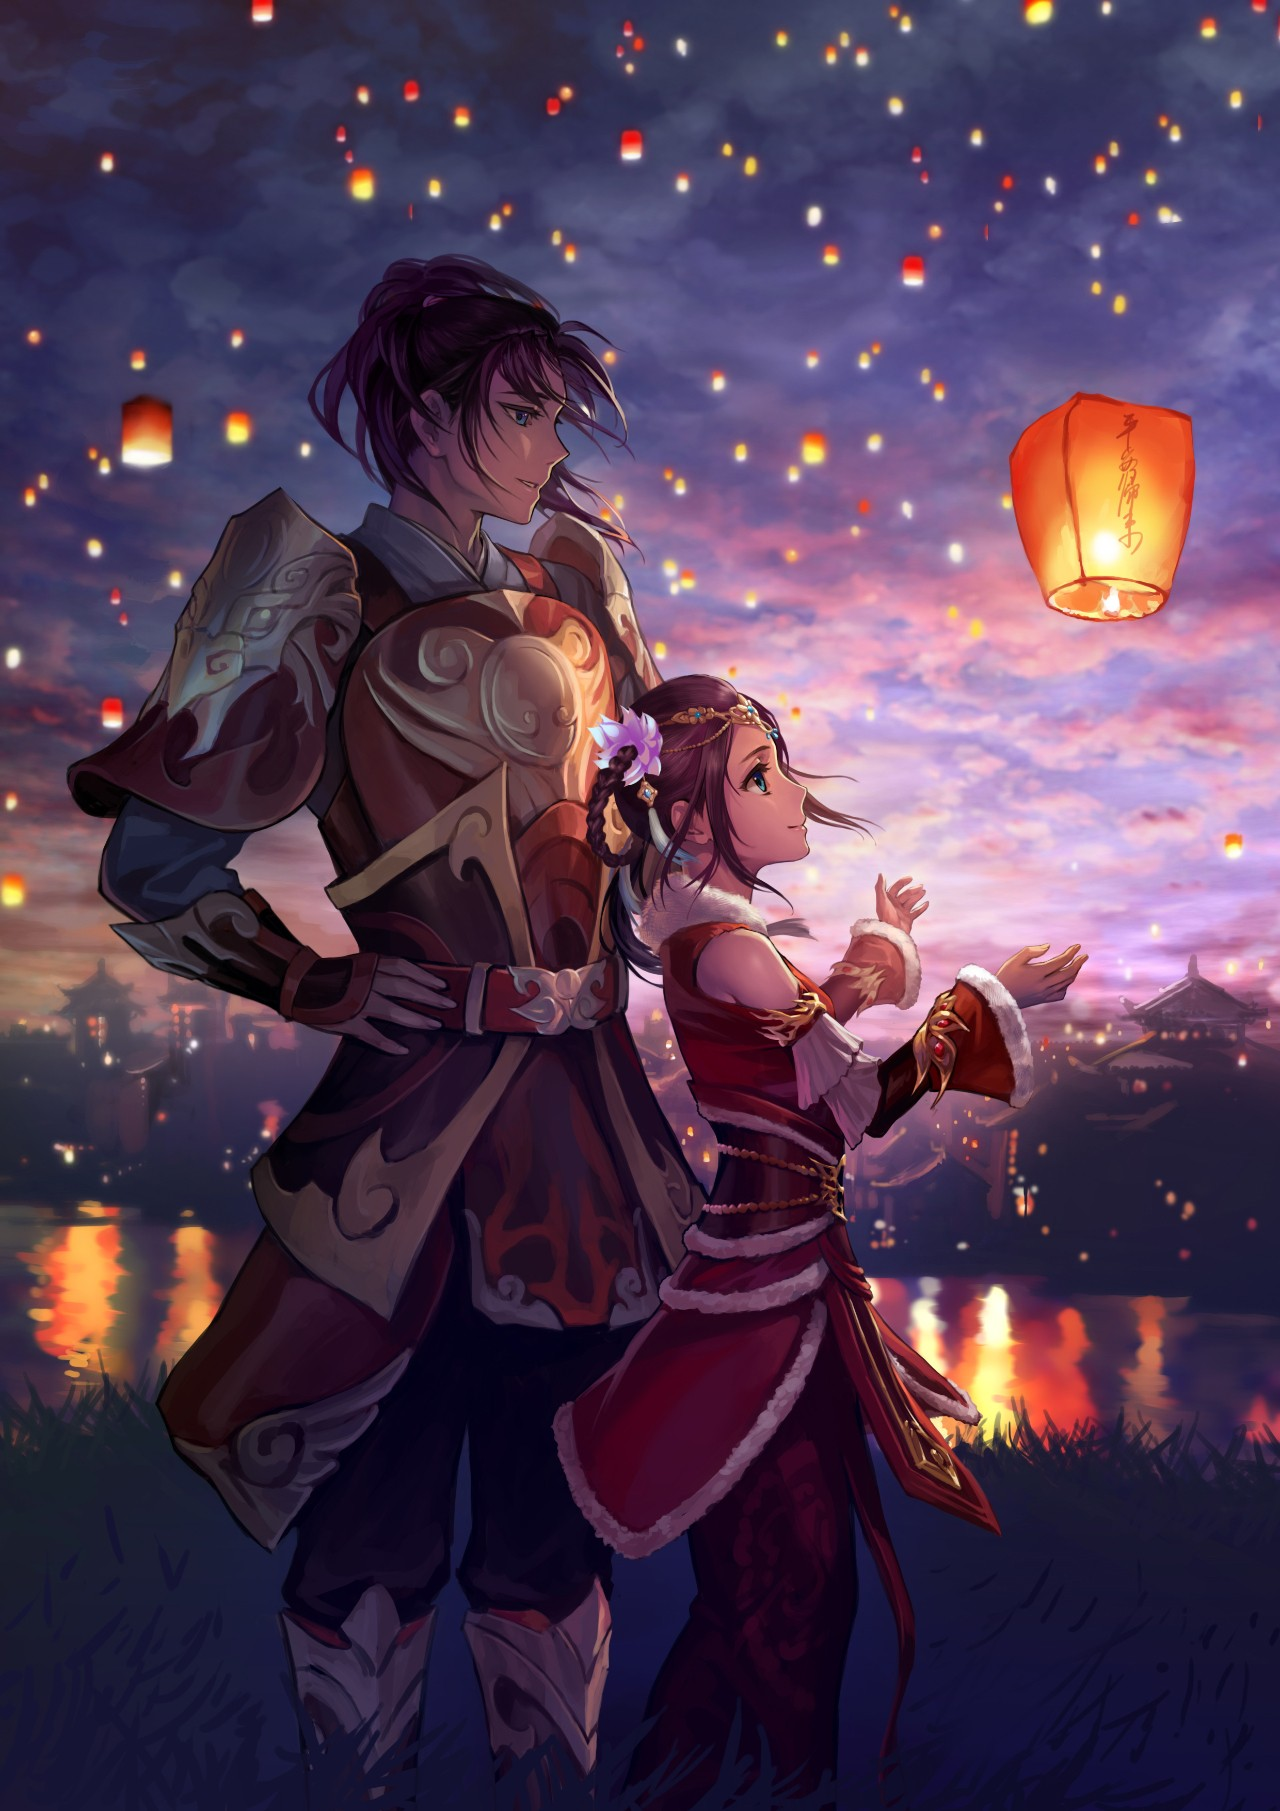 Sky Lanterns Wallpaper Iphone Lantern Lights Original Characters Sky Lanterns